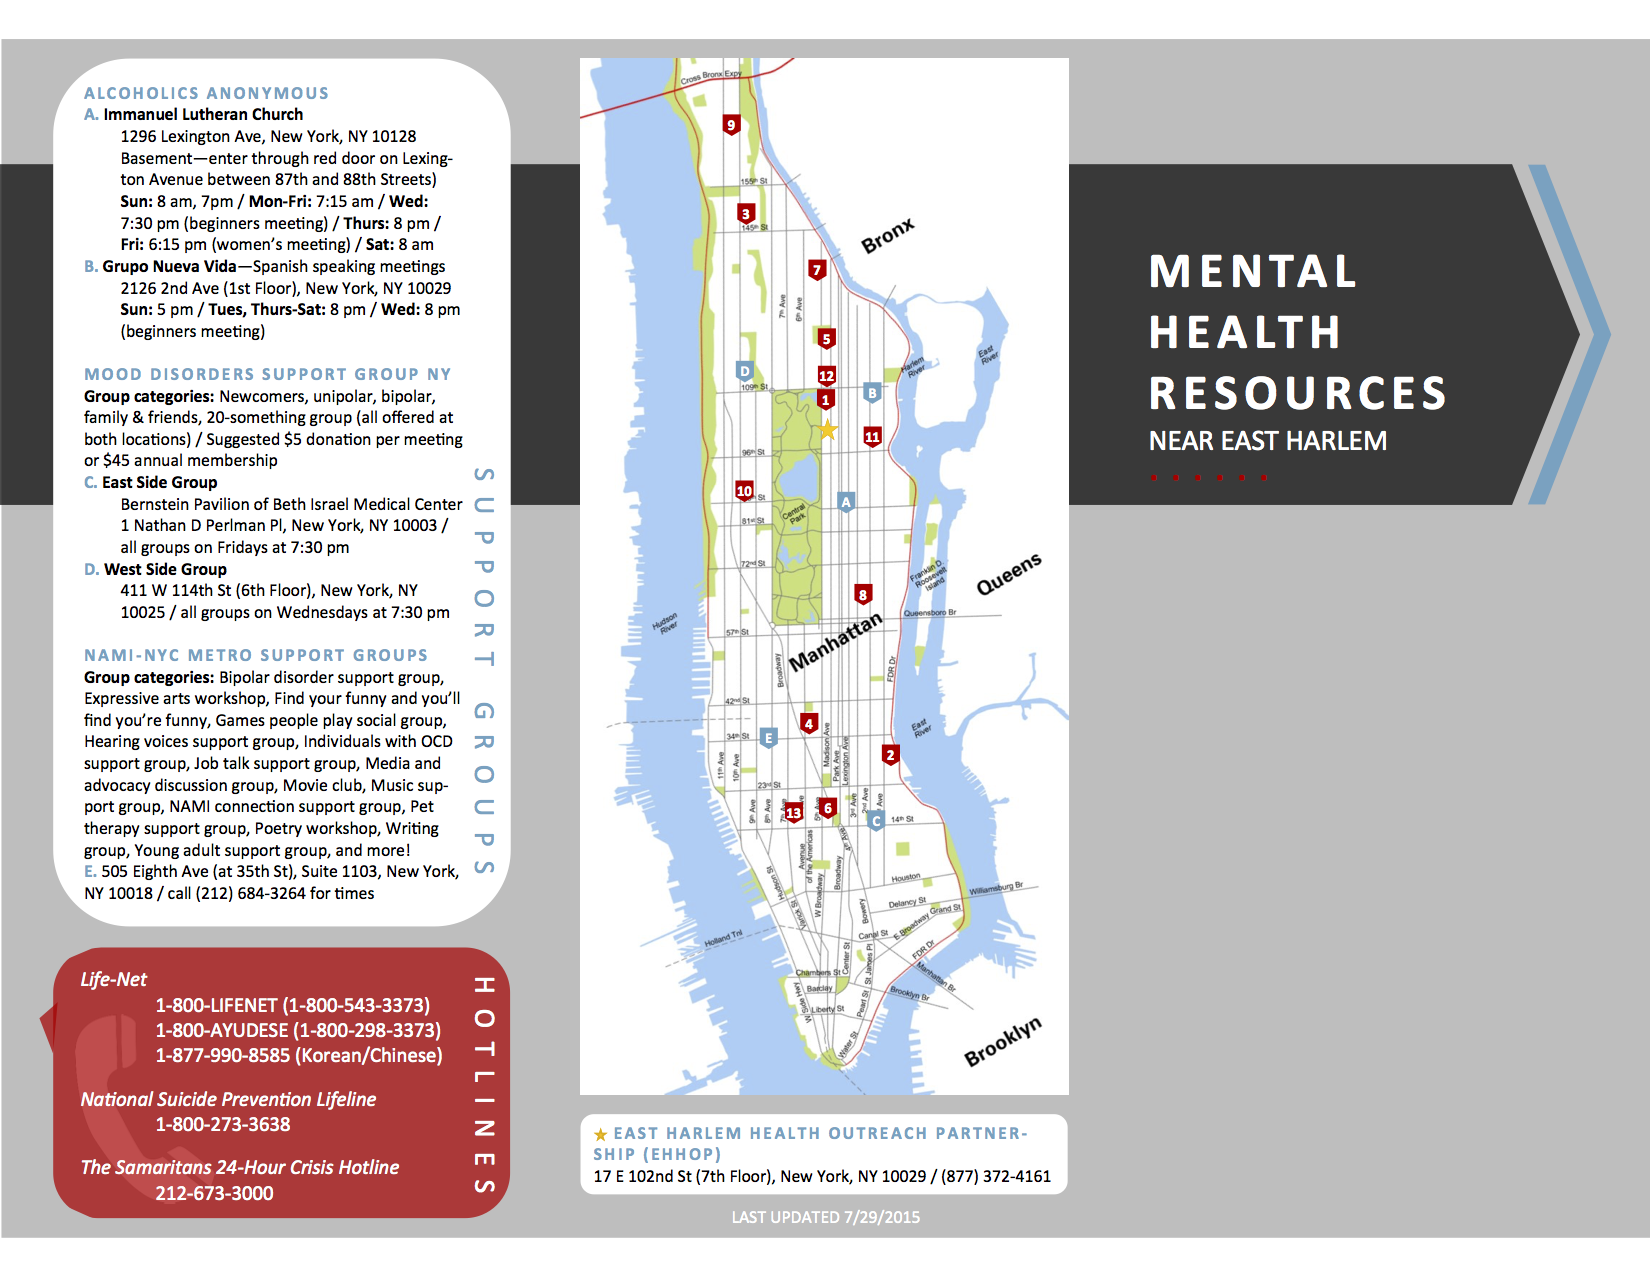 EHHOP - Mental Health Resources Near East Harlem